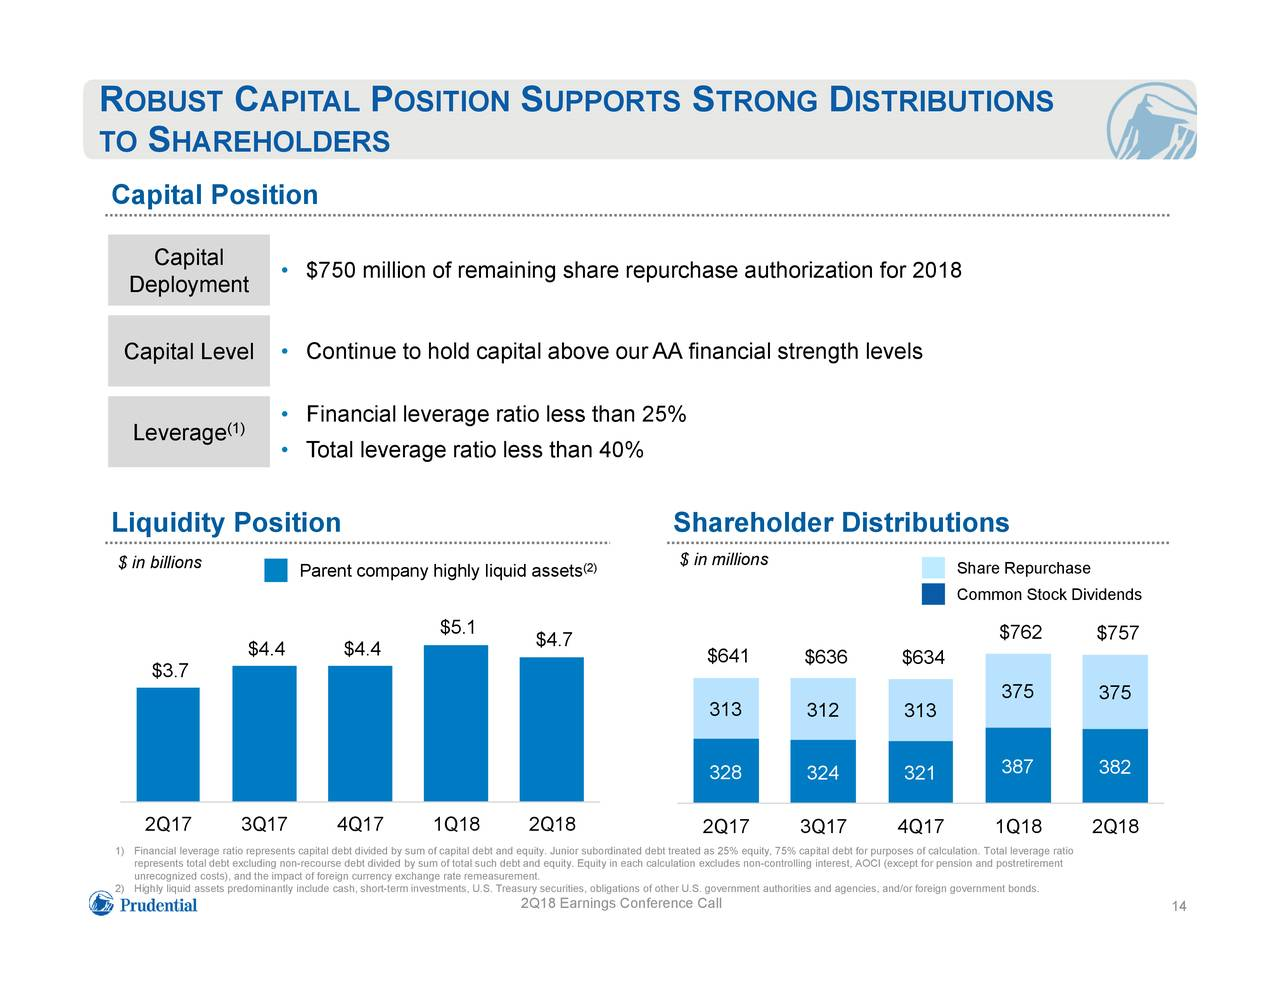 Prudential Is Clearly A Buy - Prudential Financial, Inc